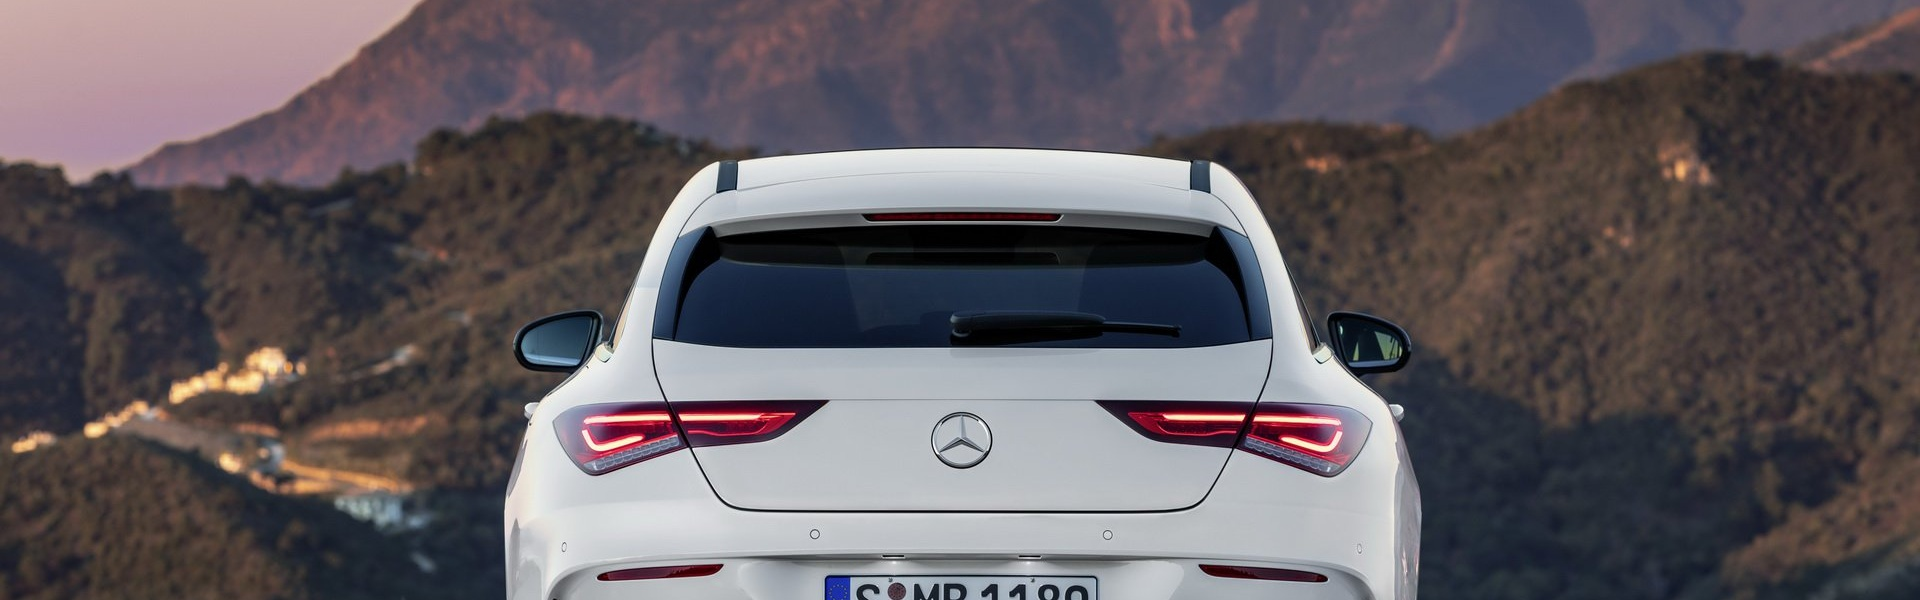 2019-mercedes-cla-shooting-brake-unveiled-23.jpg